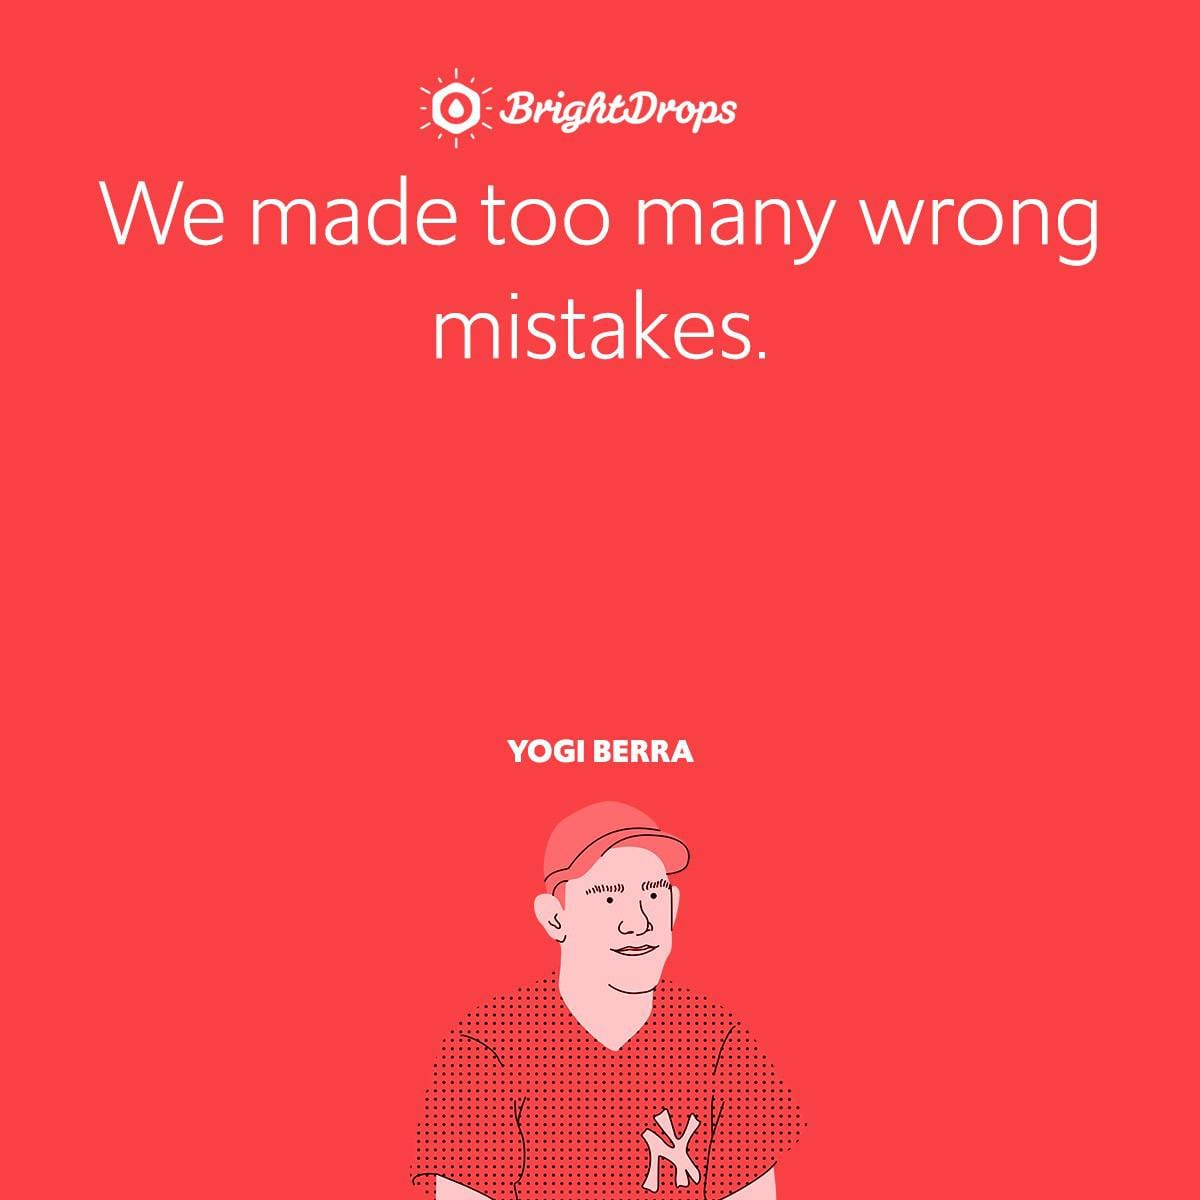 We made too many wrong mistakes.